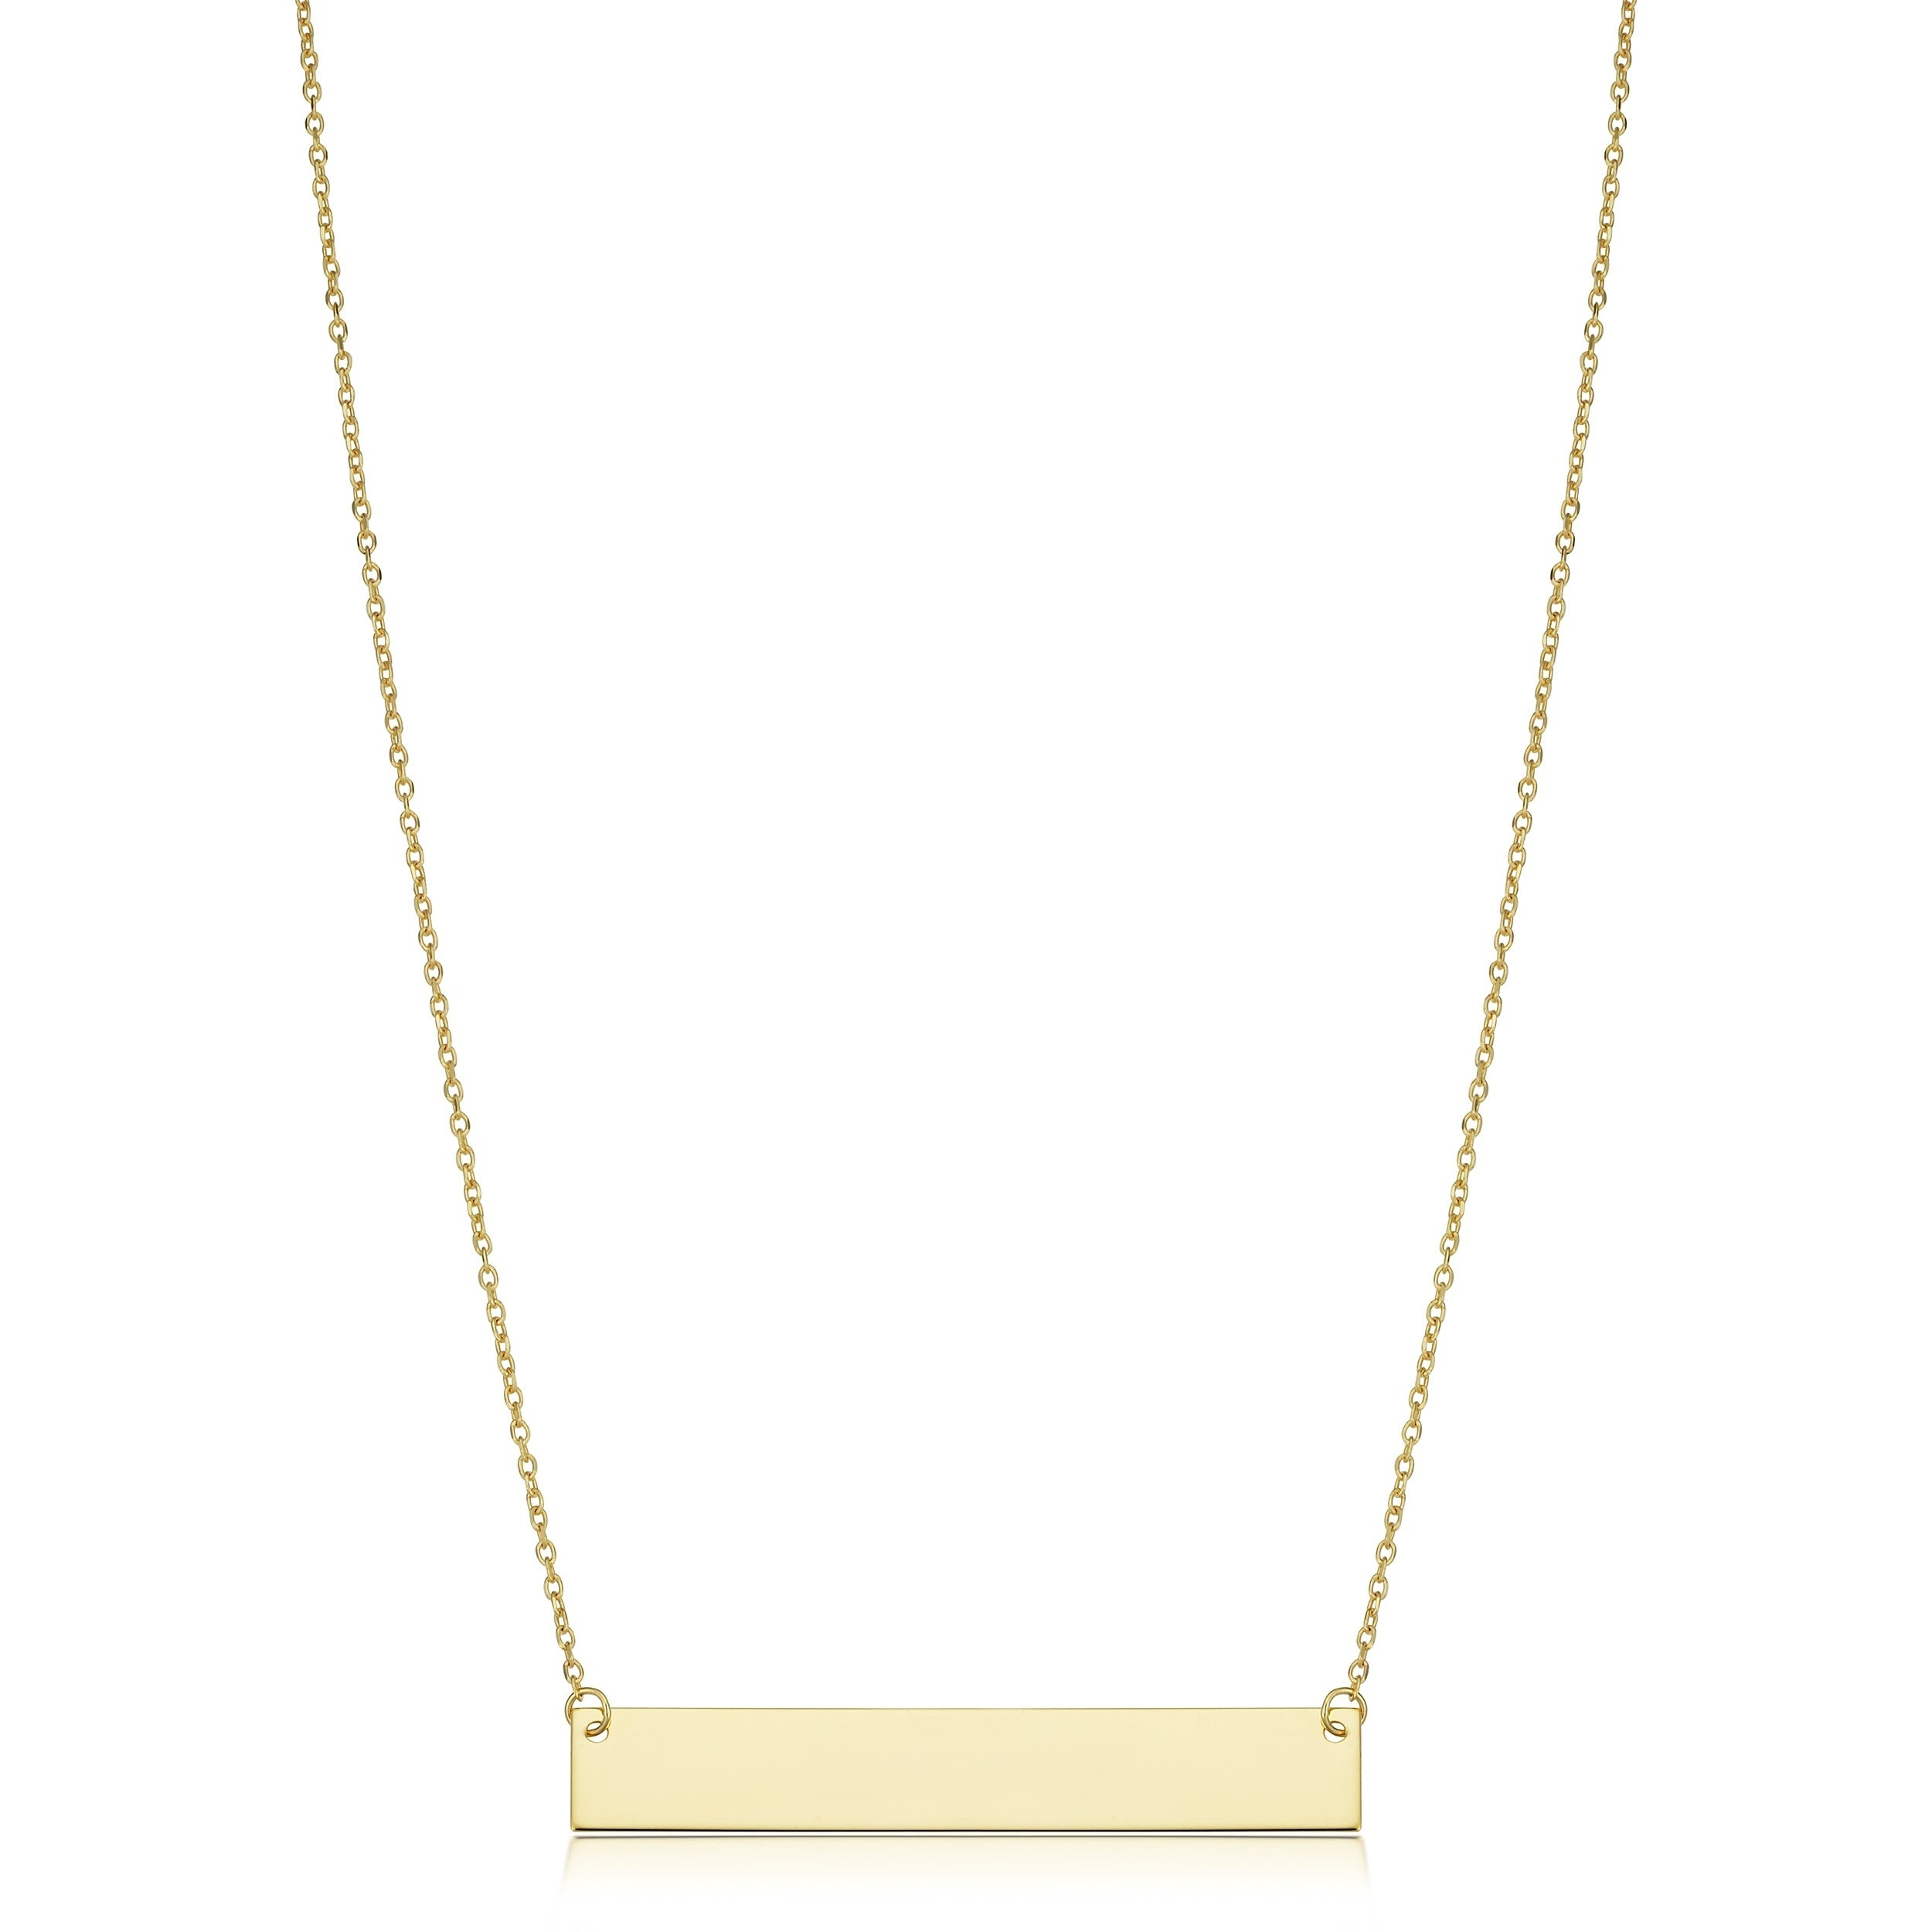 10K Or 14K Gold Engraveable Bar Cable Chain Necklace (18 Inch) With Regard To 2020 Classic Cable Chain Necklaces (View 1 of 25)